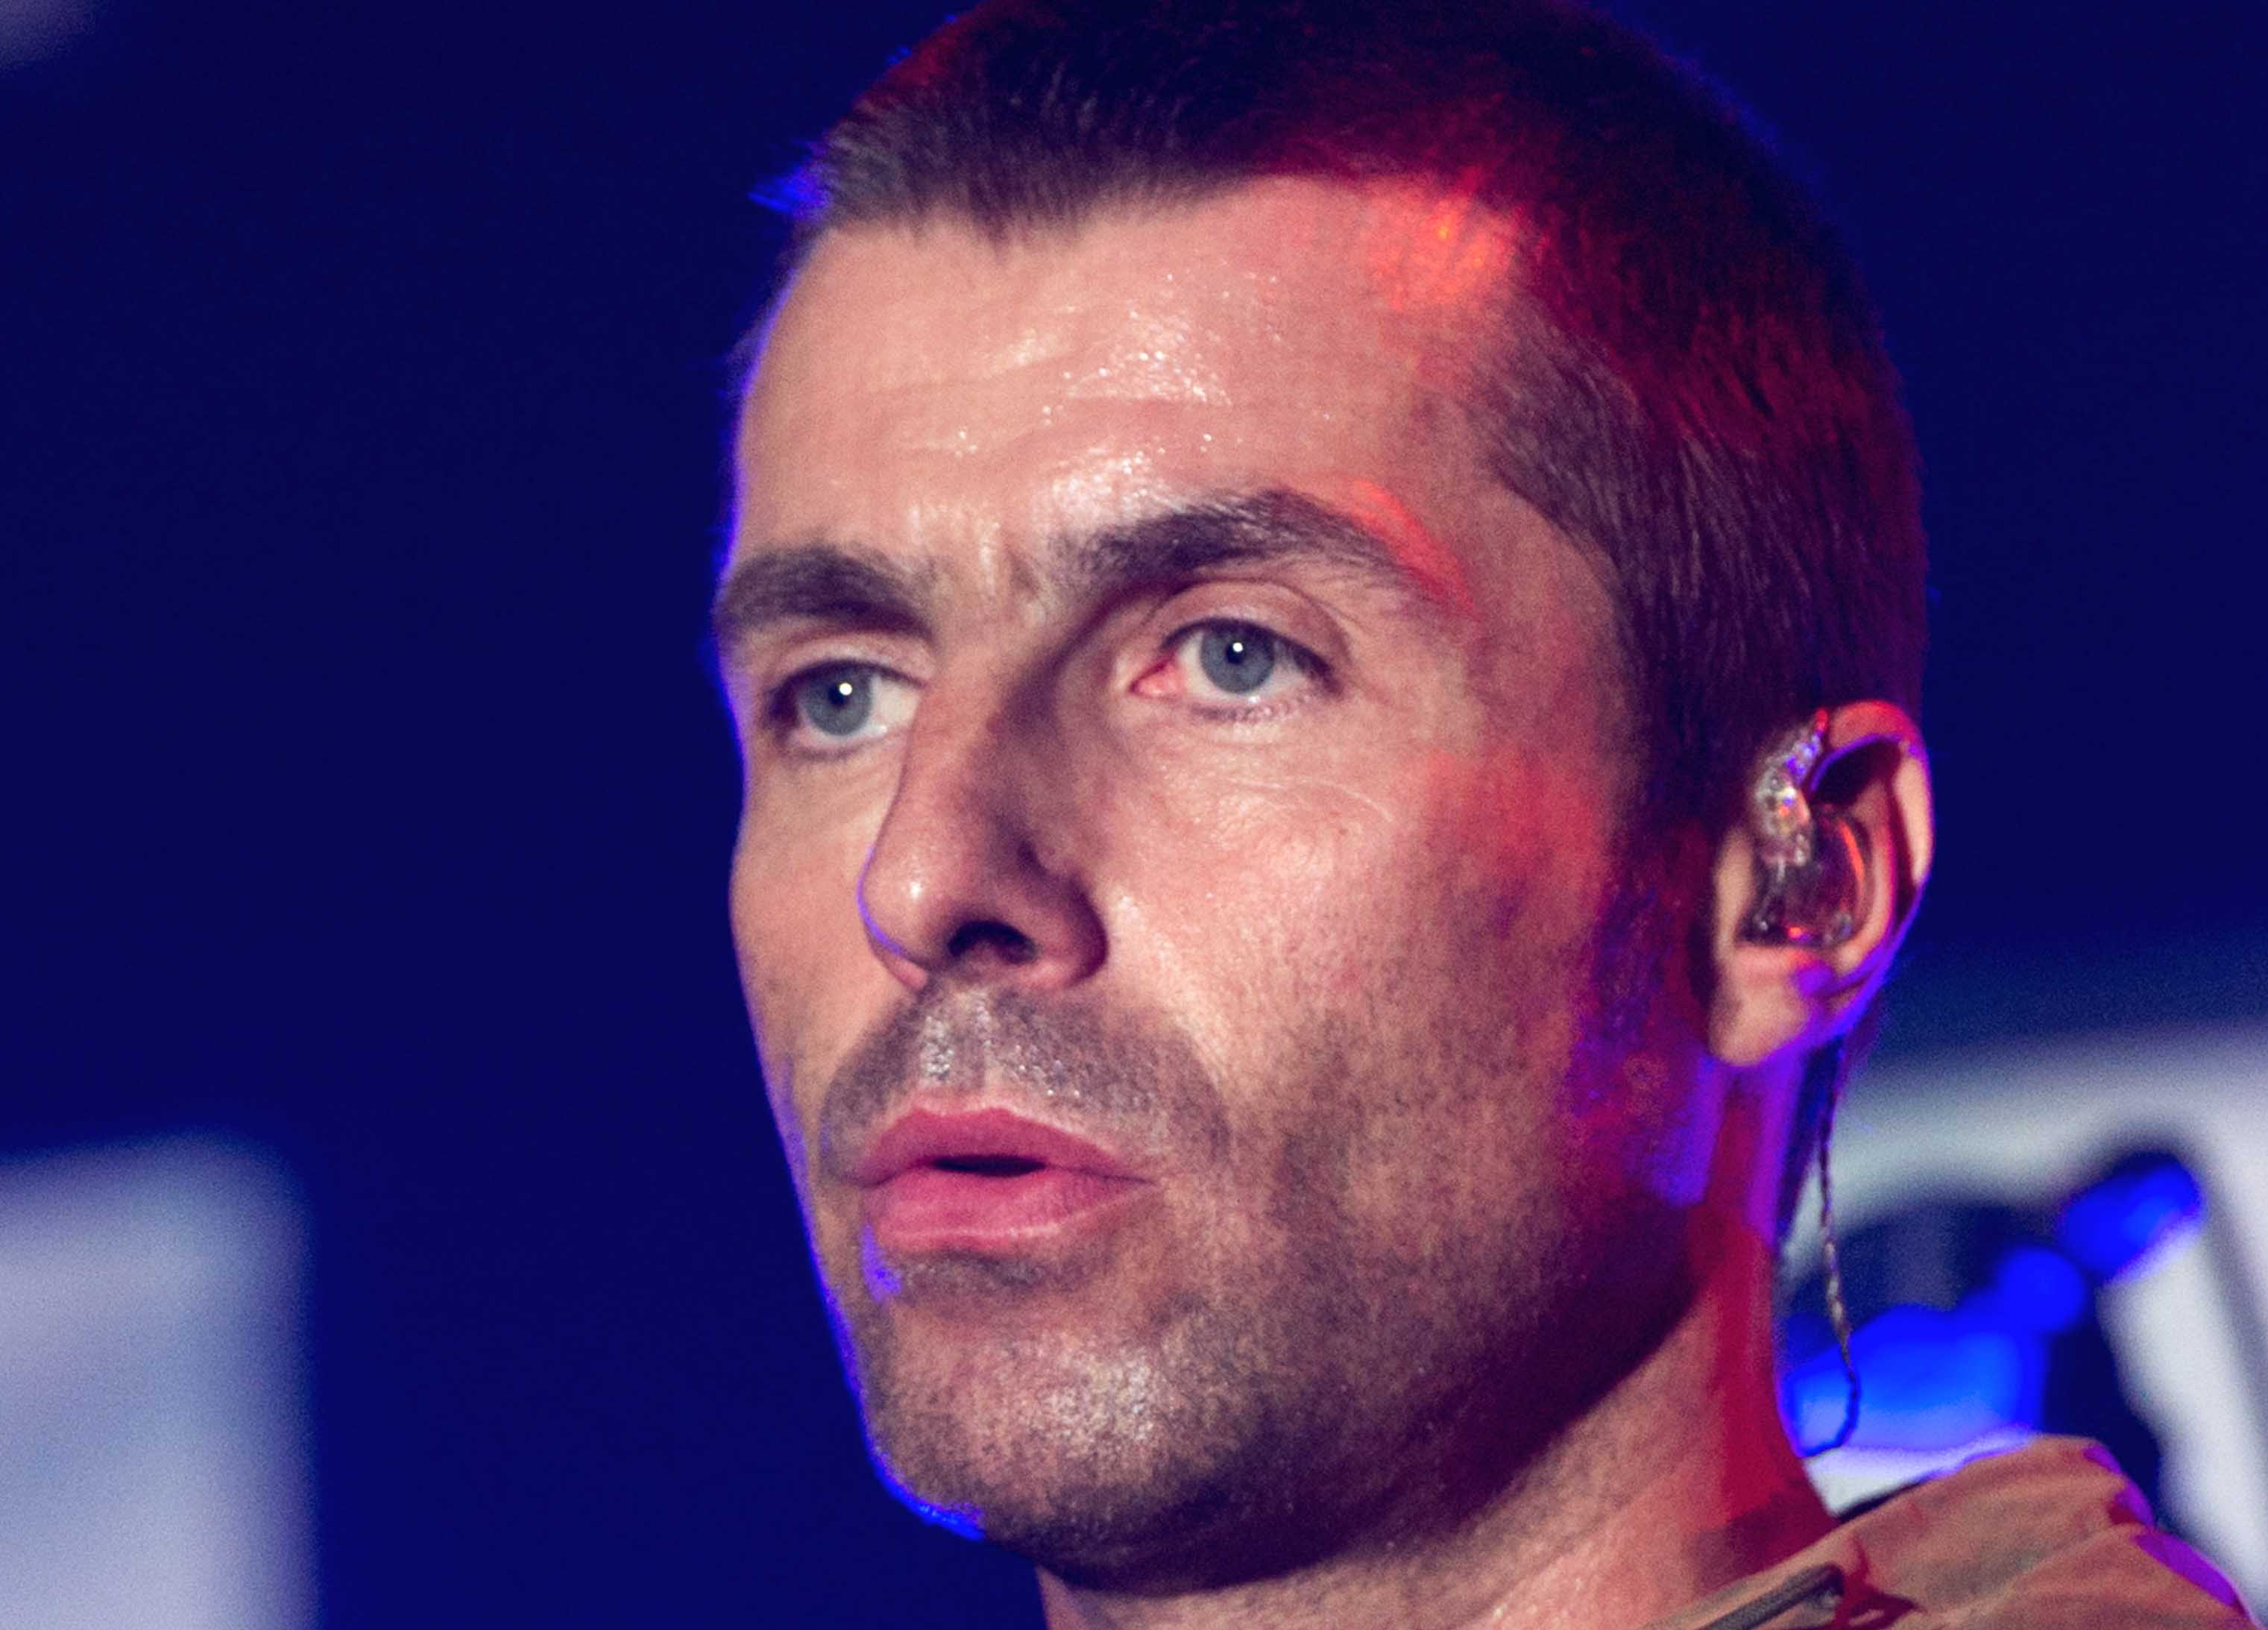 Liam Gallagher Reveals Cause For Feud With Brother Noel Gallagher